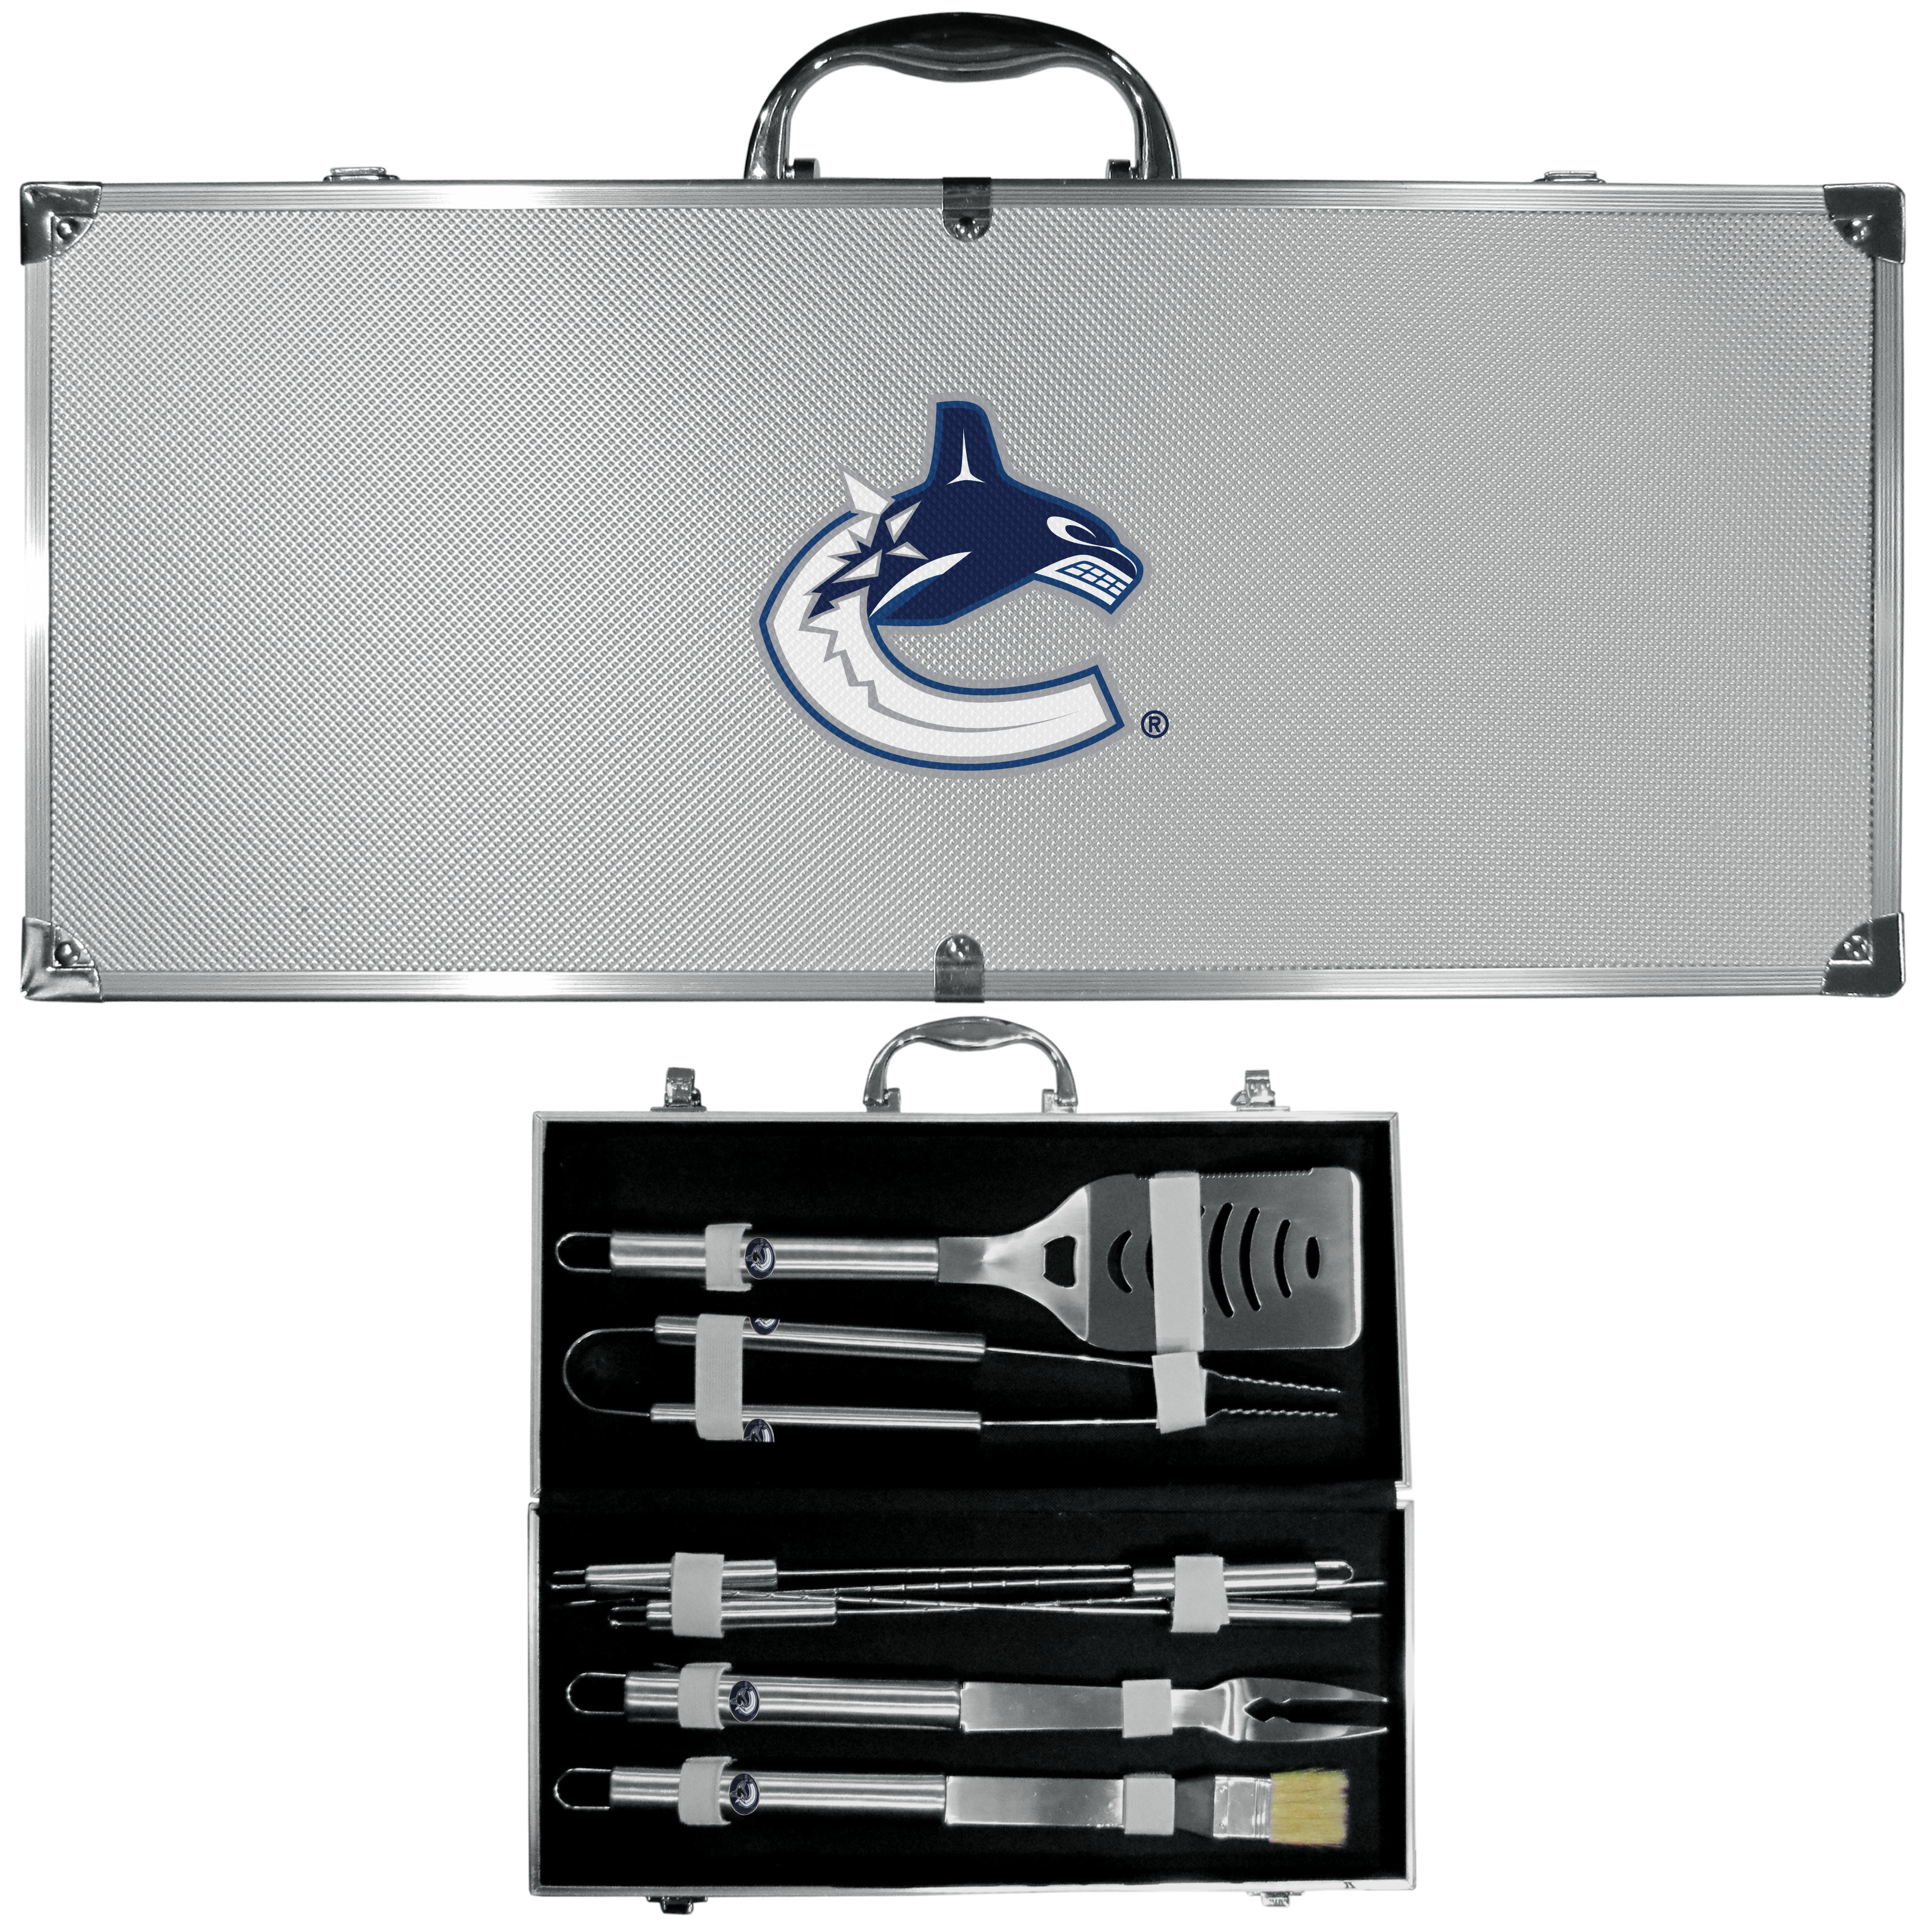 Vancouver Canucks 8 pc Stainless Steel BBQ Set w/Metal Case - This is the ultimate Vancouver Canucks tailgate accessory! The high quality, 420 grade stainless steel tools are durable and well-made enough to make even the pickiest grill master smile. This complete grill accessory kit includes; 4 skewers, spatula with bottle opener and serrated knife edge, basting brush, tongs and a fork. The 18 inch metal carrying case makes this a great outdoor kit making grilling an ease while camping, tailgating or while having a game day party on your patio. The tools are 17 inches long and feature a metal team emblem. The metal case features a large, metal team emblem with exceptional detail. This high-end men's gift is sure to be a hit as a present on Father's Day or Christmas.